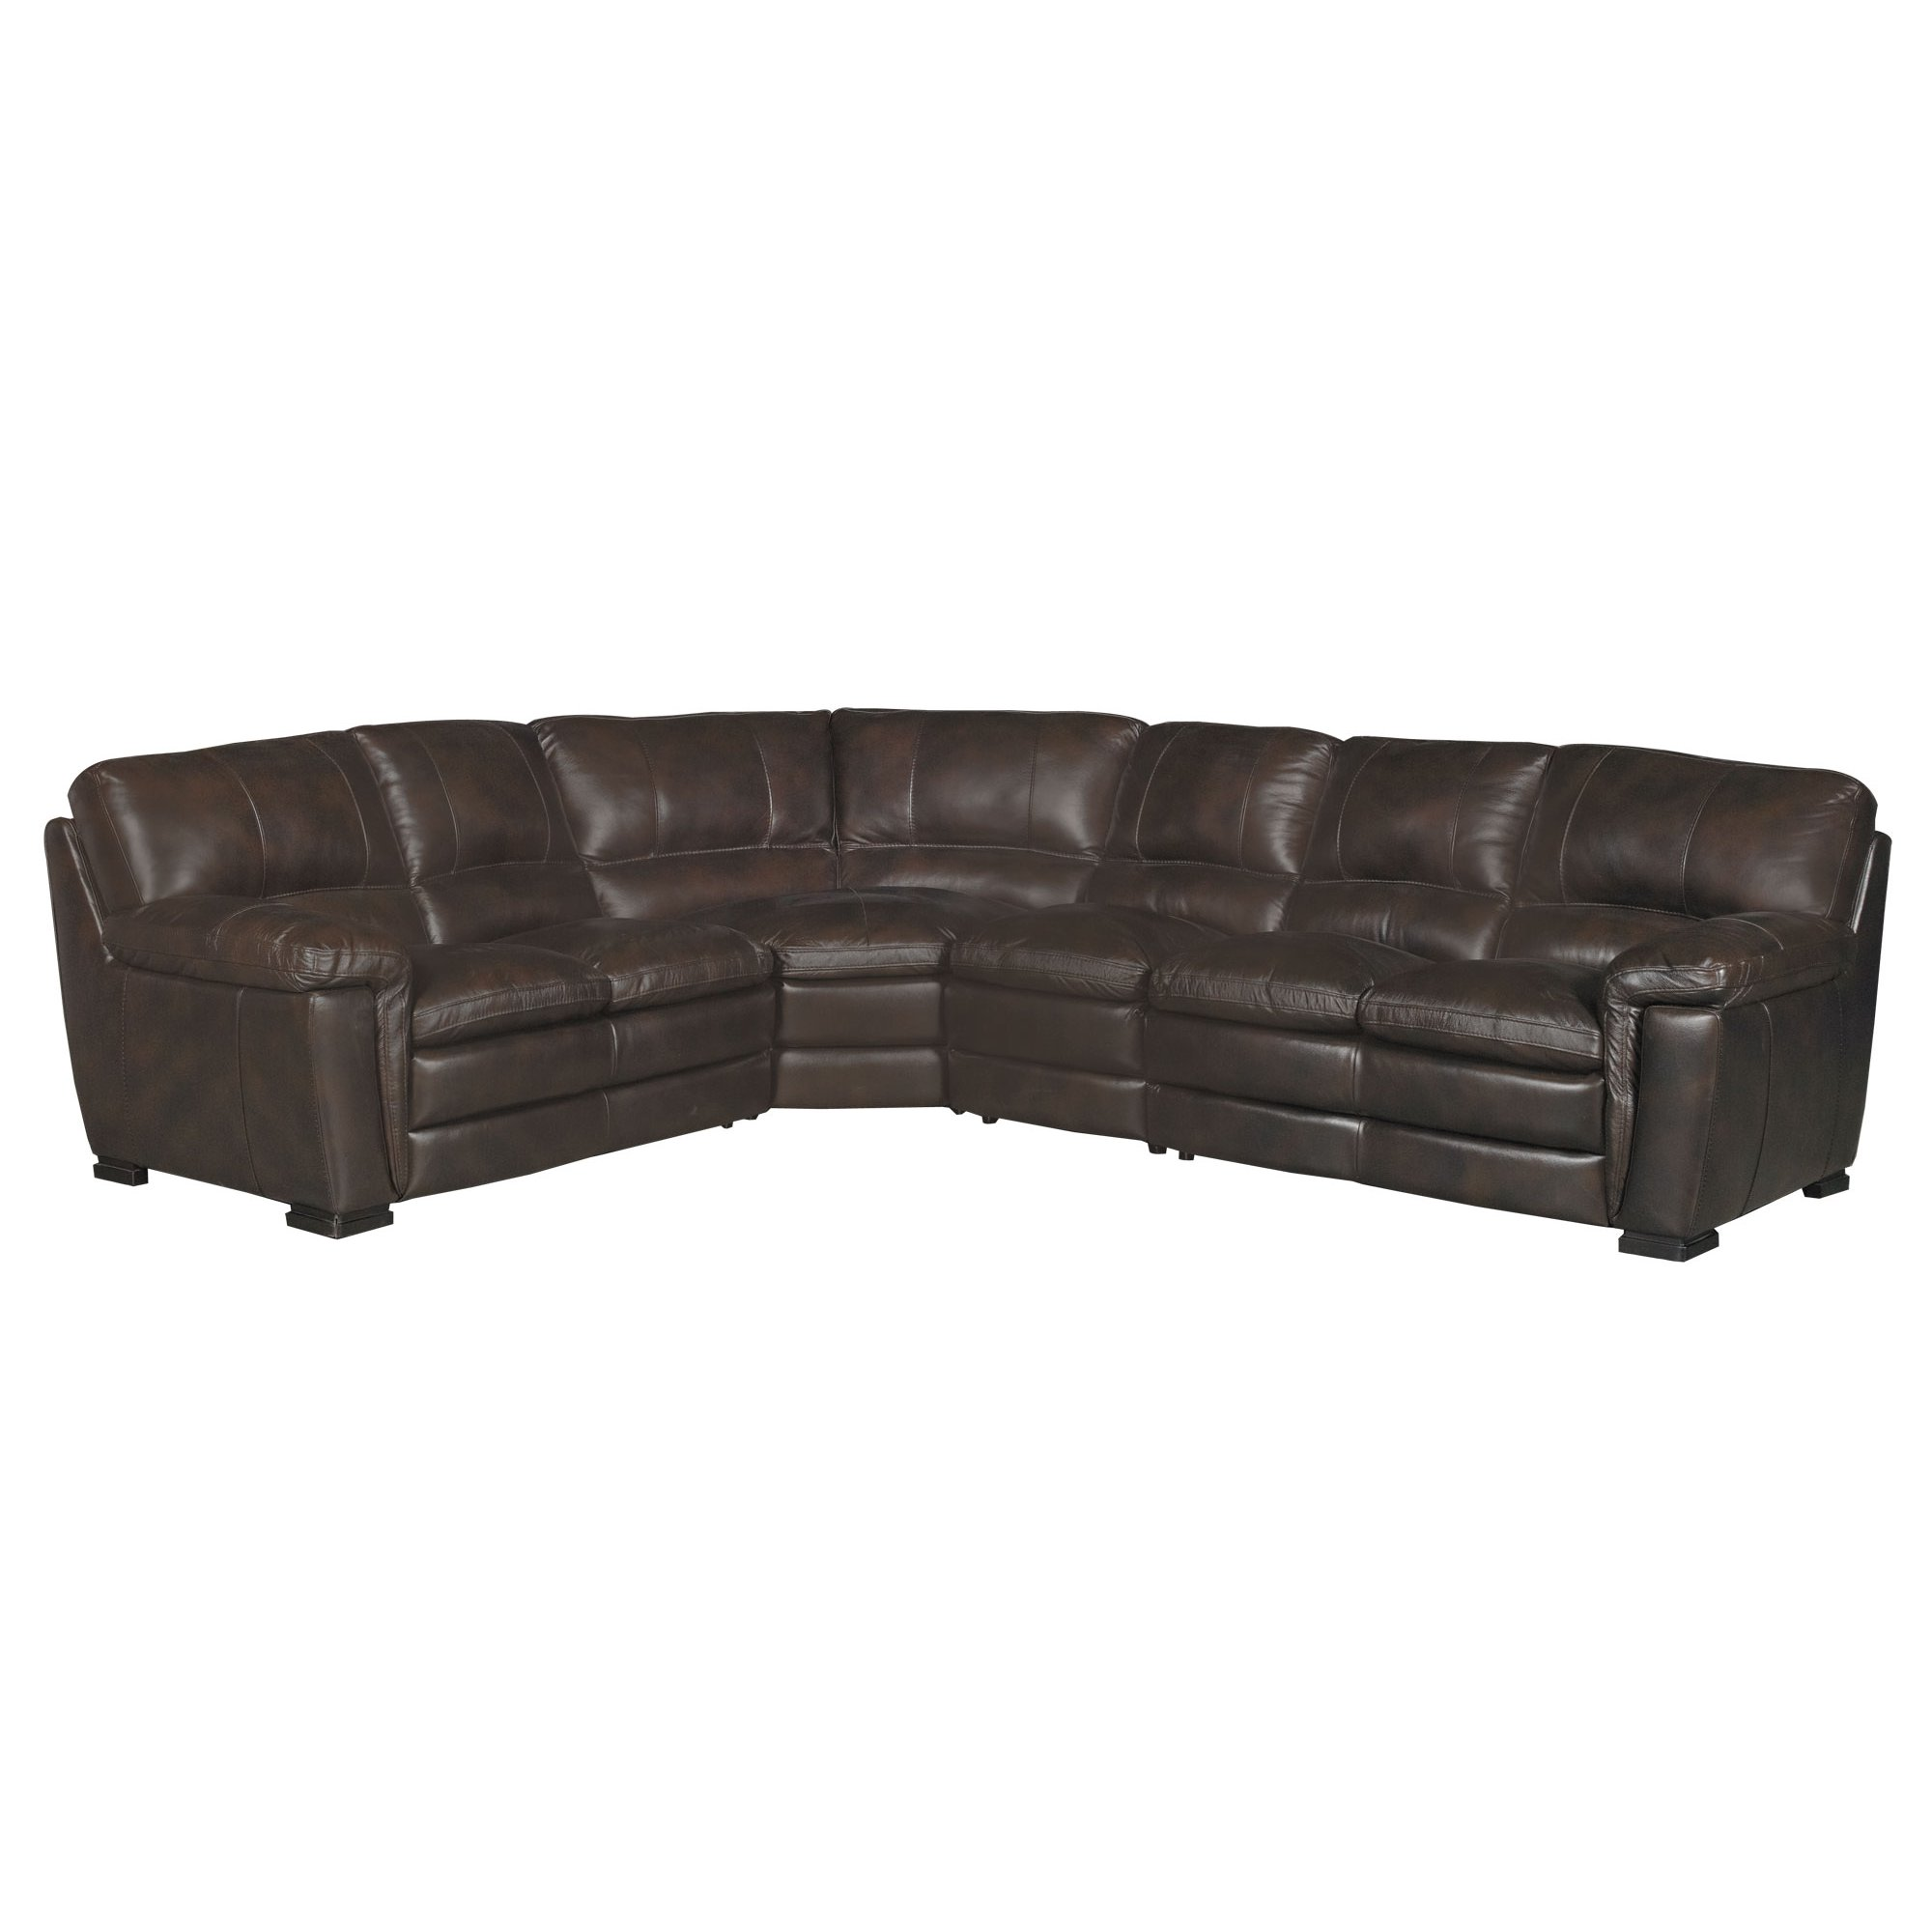 Contemporary 4 Piece Brown Leather Sectional Sofa   Tanner